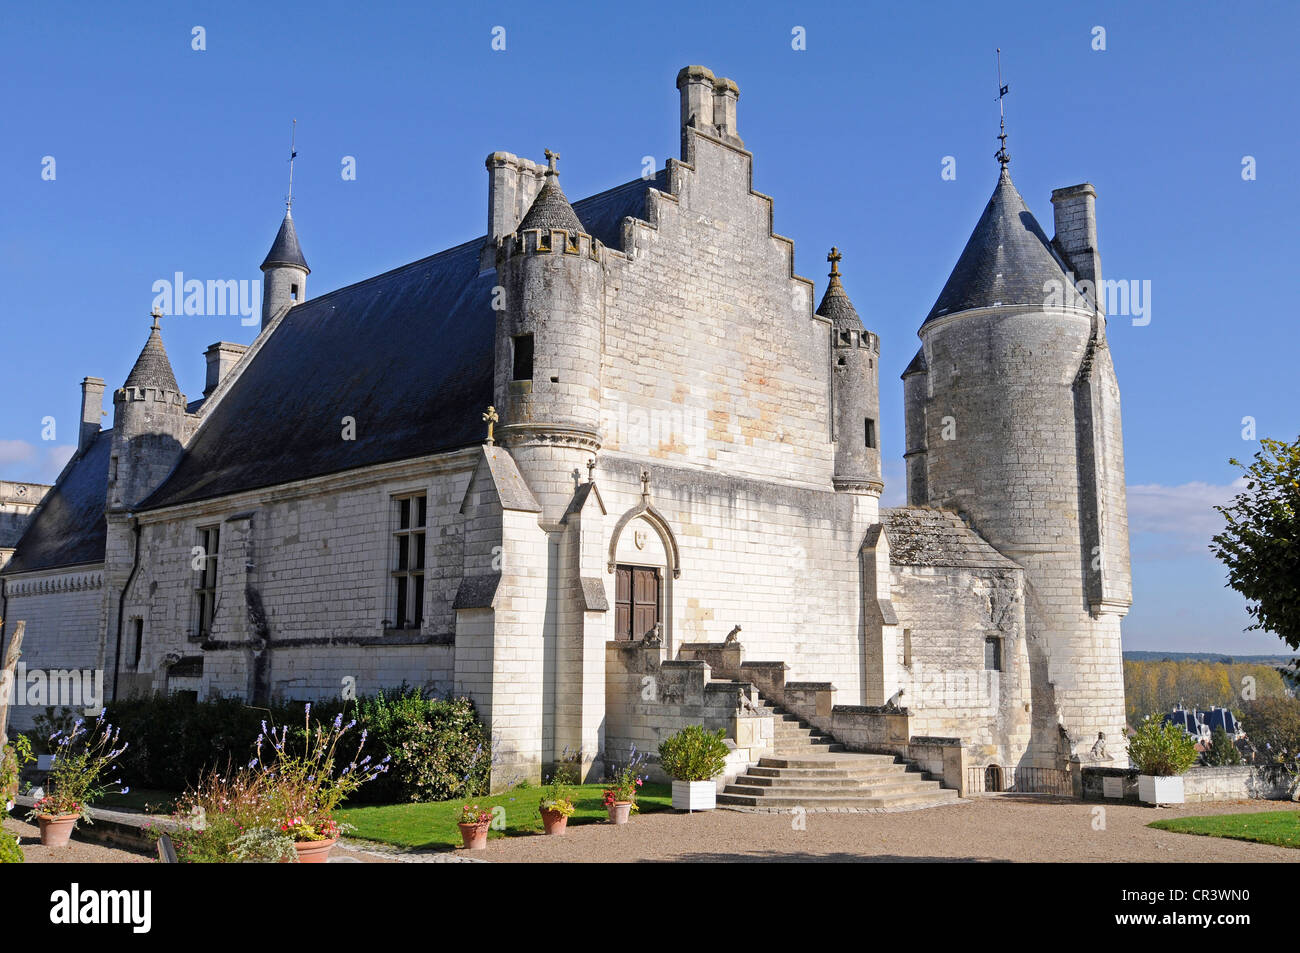 Logis Royal Castle, residence, Castle Hill, Tours, Indre-et-Loire, Centre region, France, Europe - Stock Image